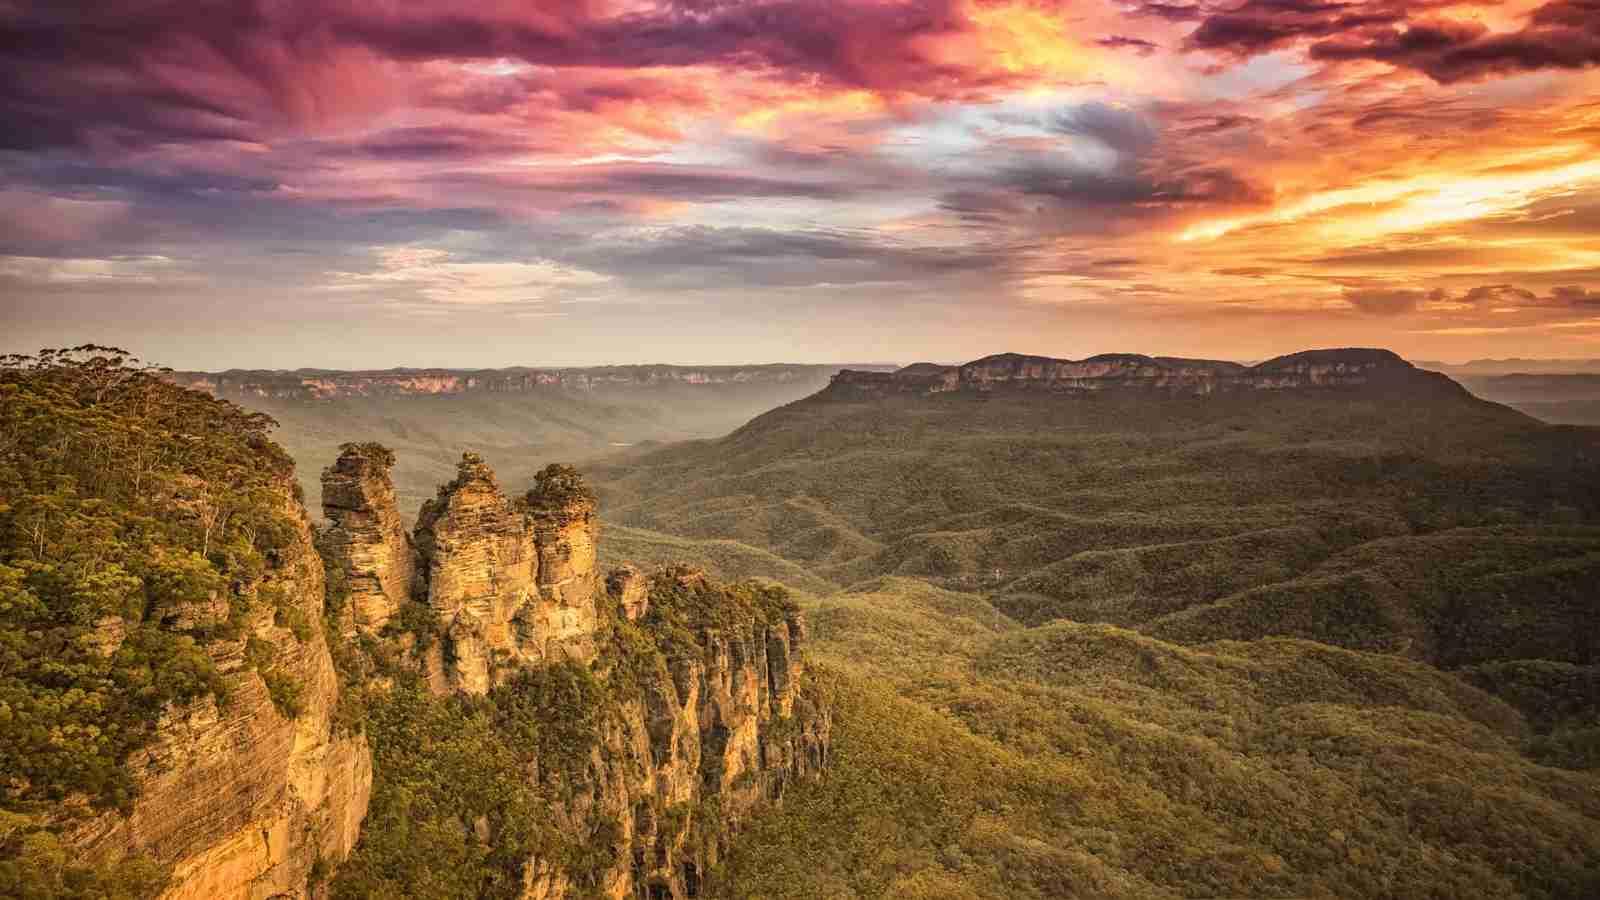 The Blue Mountains. (Photo by Markus Gann/Shutterstock)